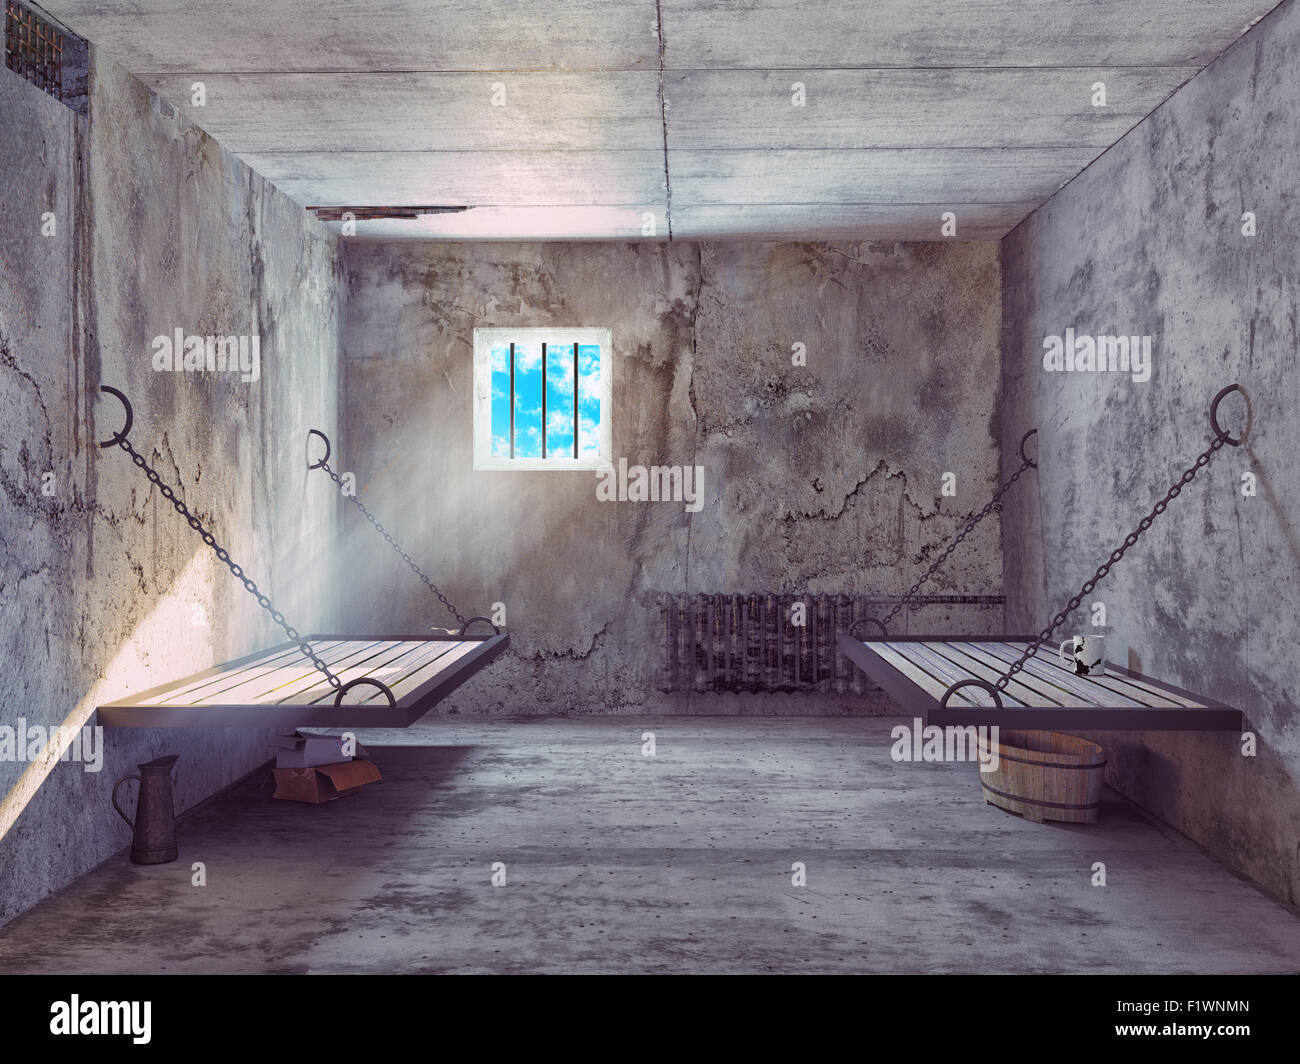 Cellule de prison sale l'intérieur. Concept 3d Photo Stock